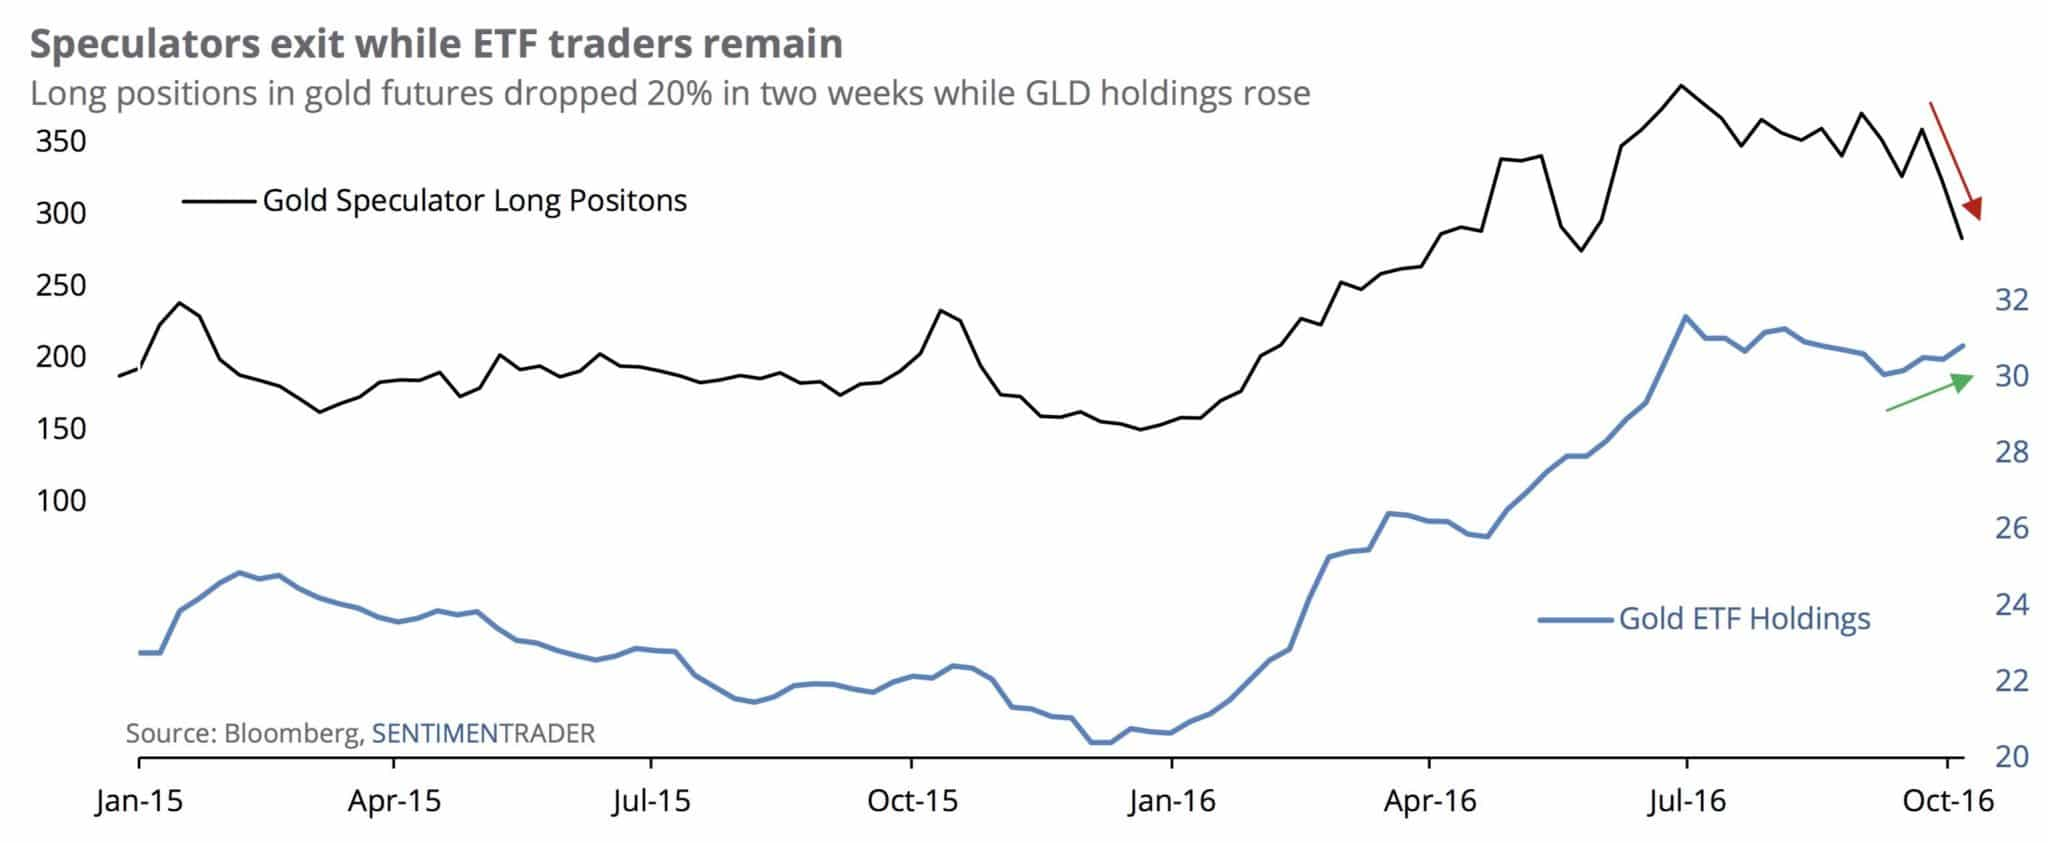 gold-speculator-long-positions-etf-holding